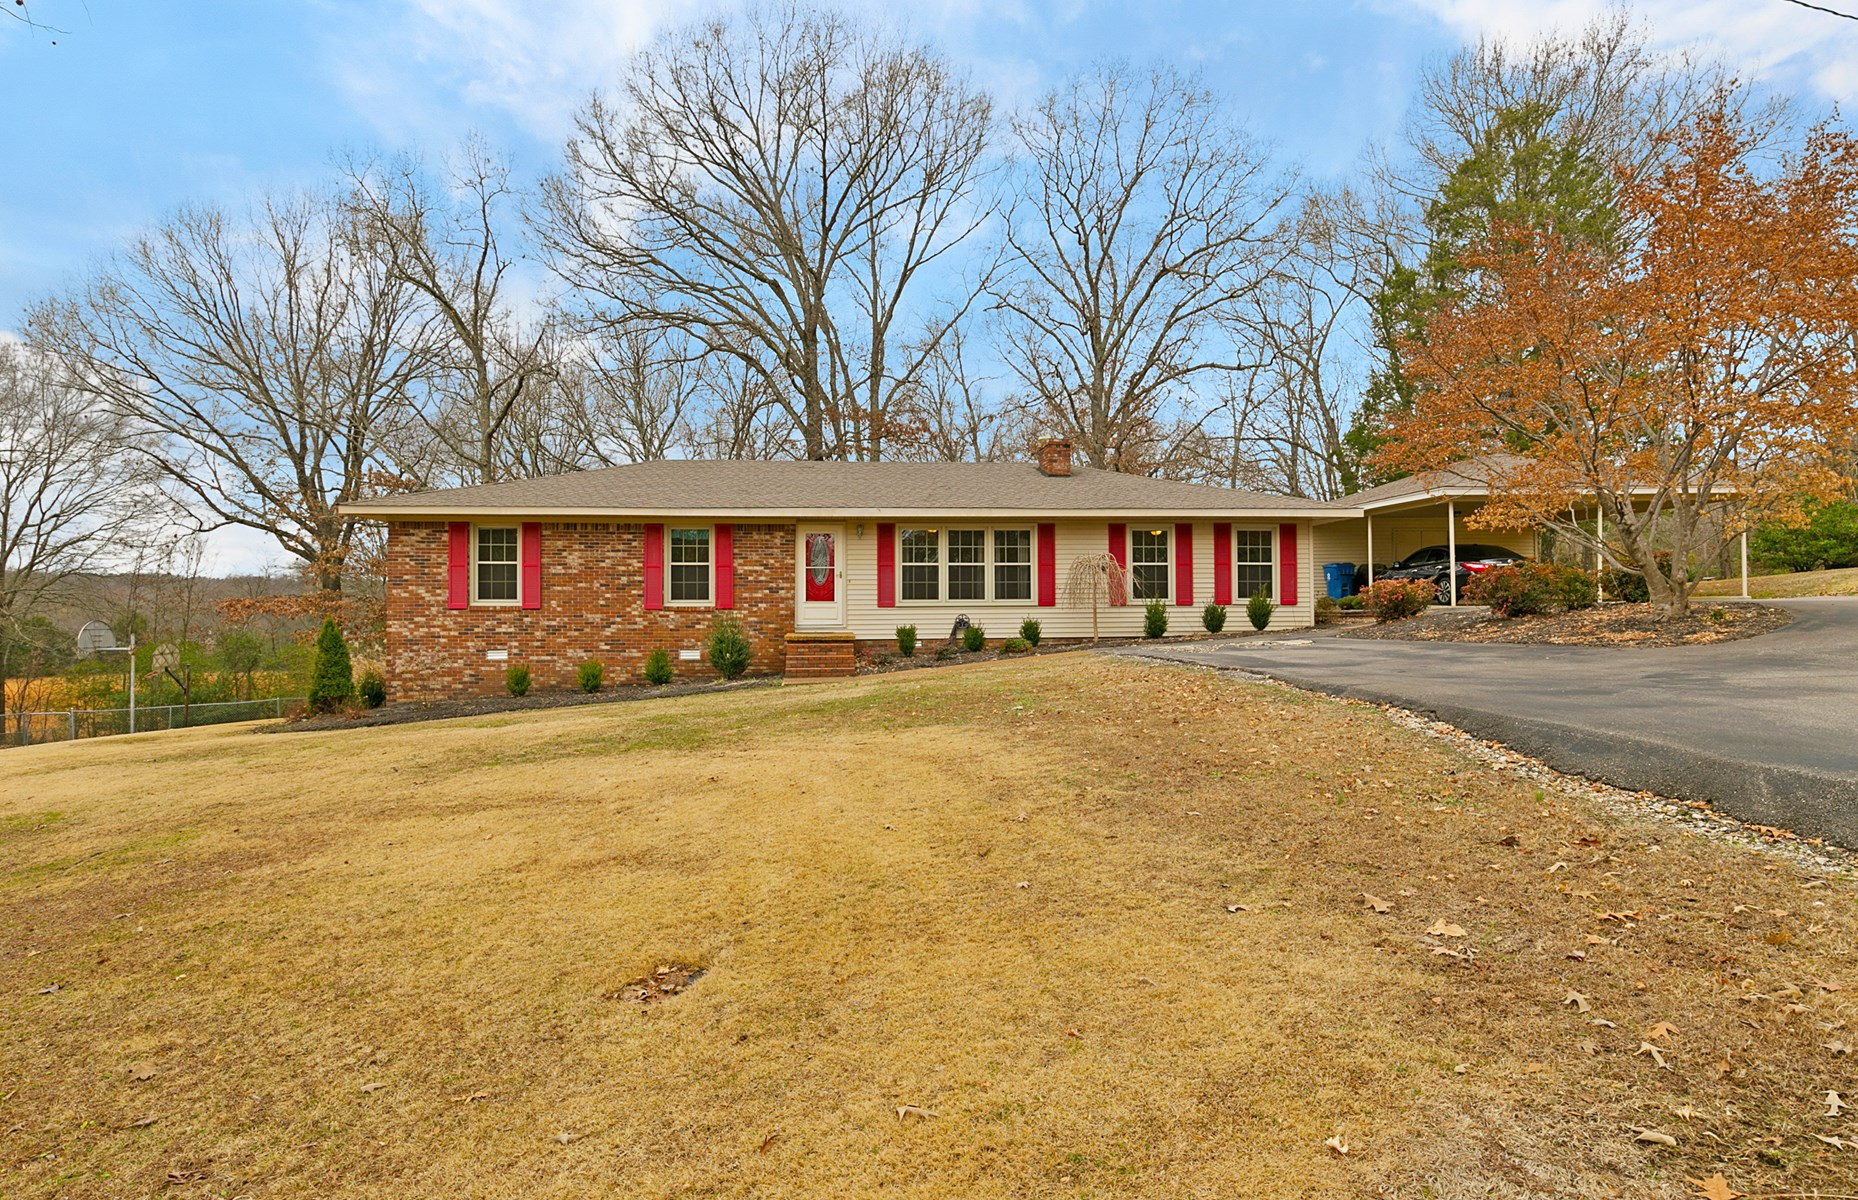 3BR / 2BA Ranch Style Home - Desirable Lot & Area - West TN